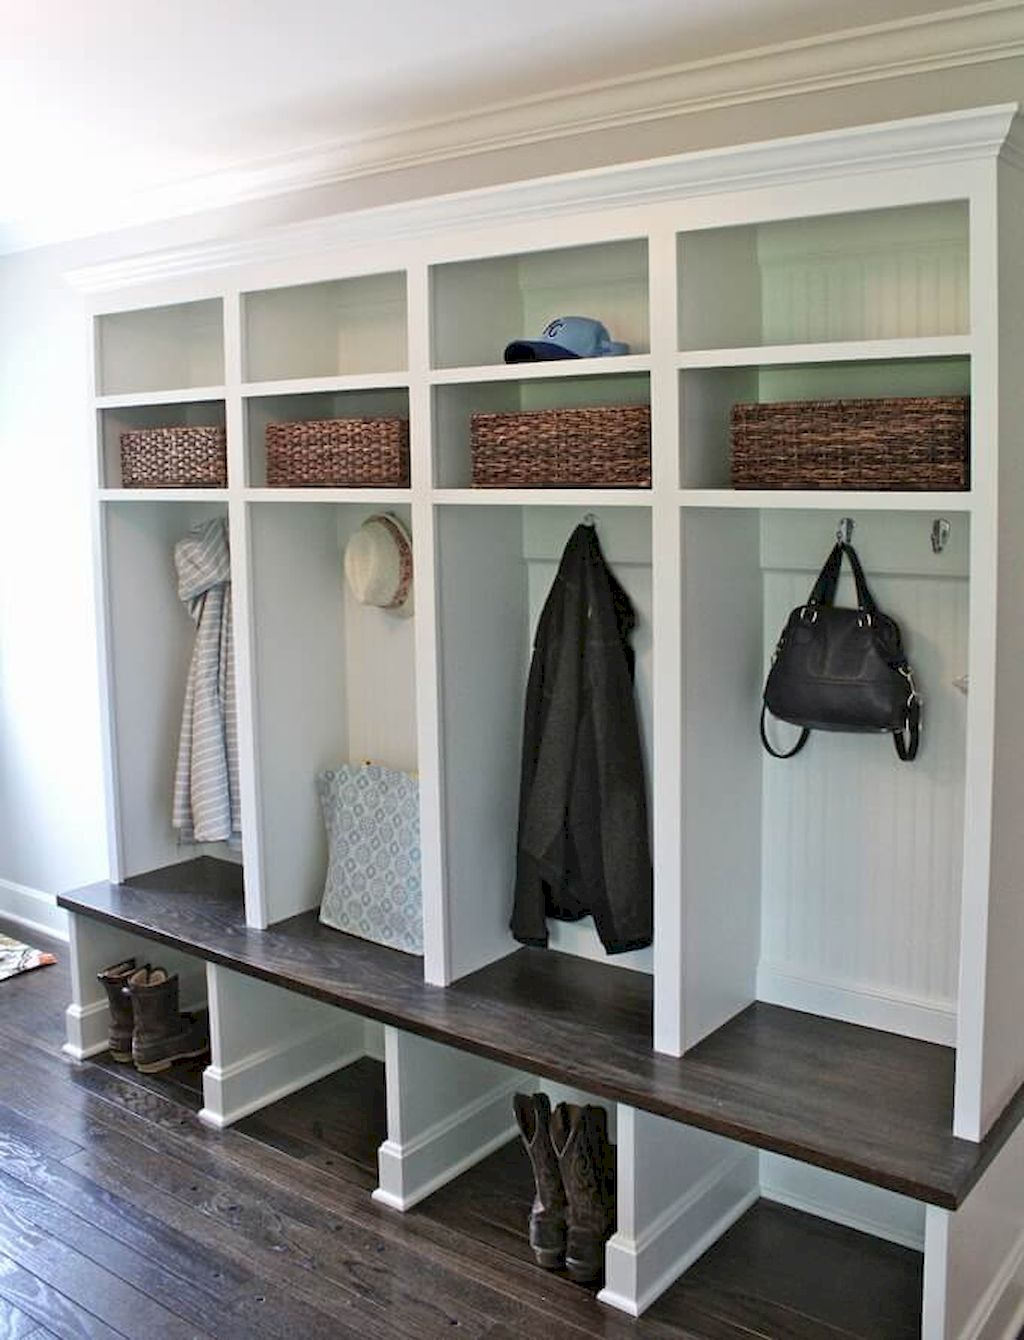 65 Cool Mudroom Design Ideas and Remodel (1)